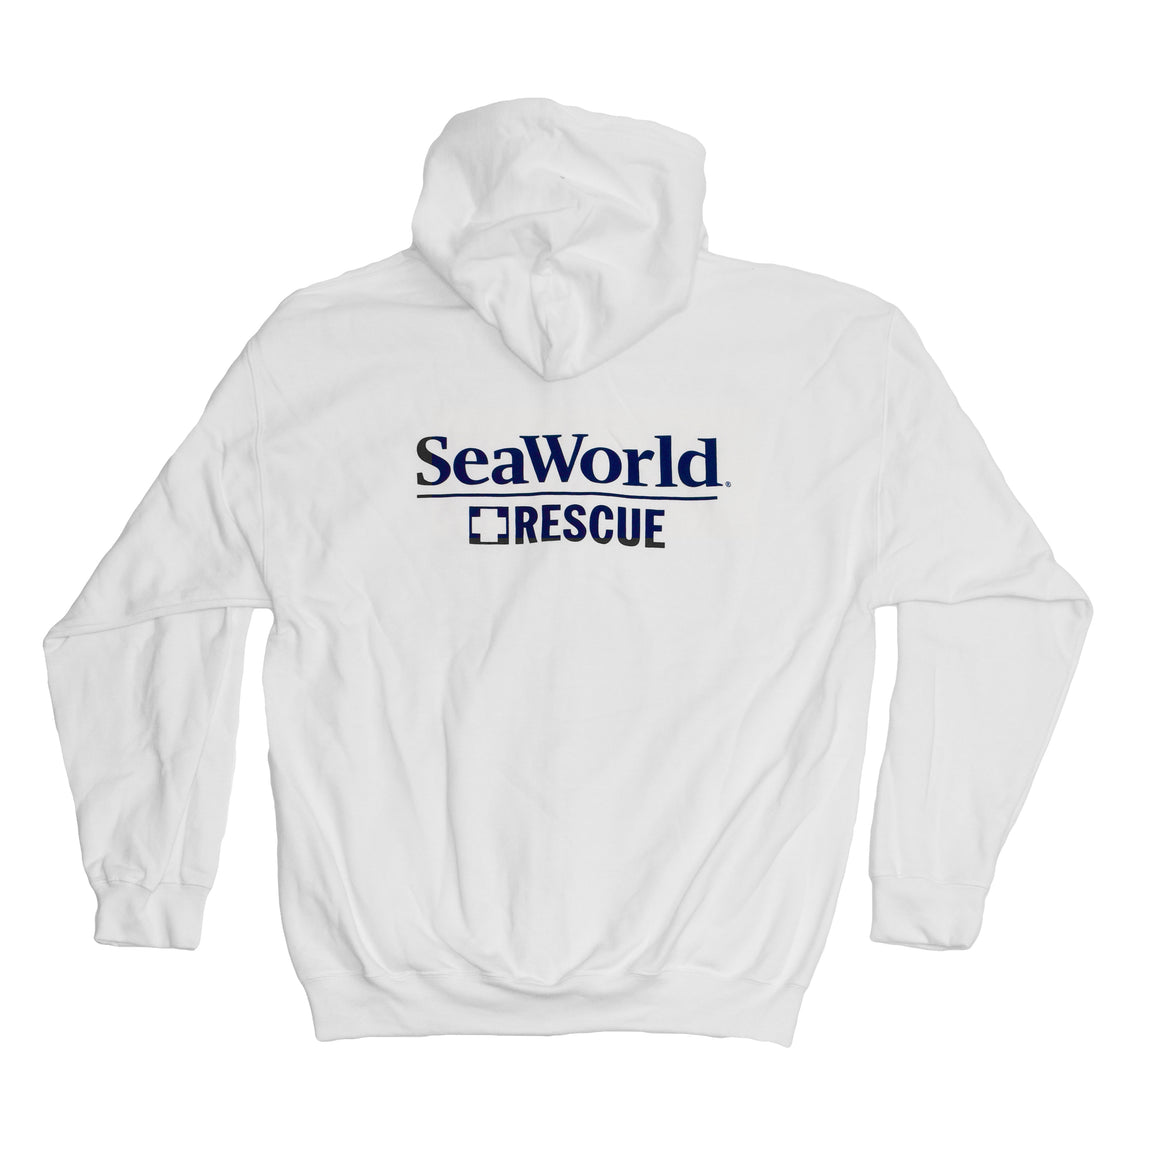 SeaWorld Rescue Ladies Zip Hoodie - White